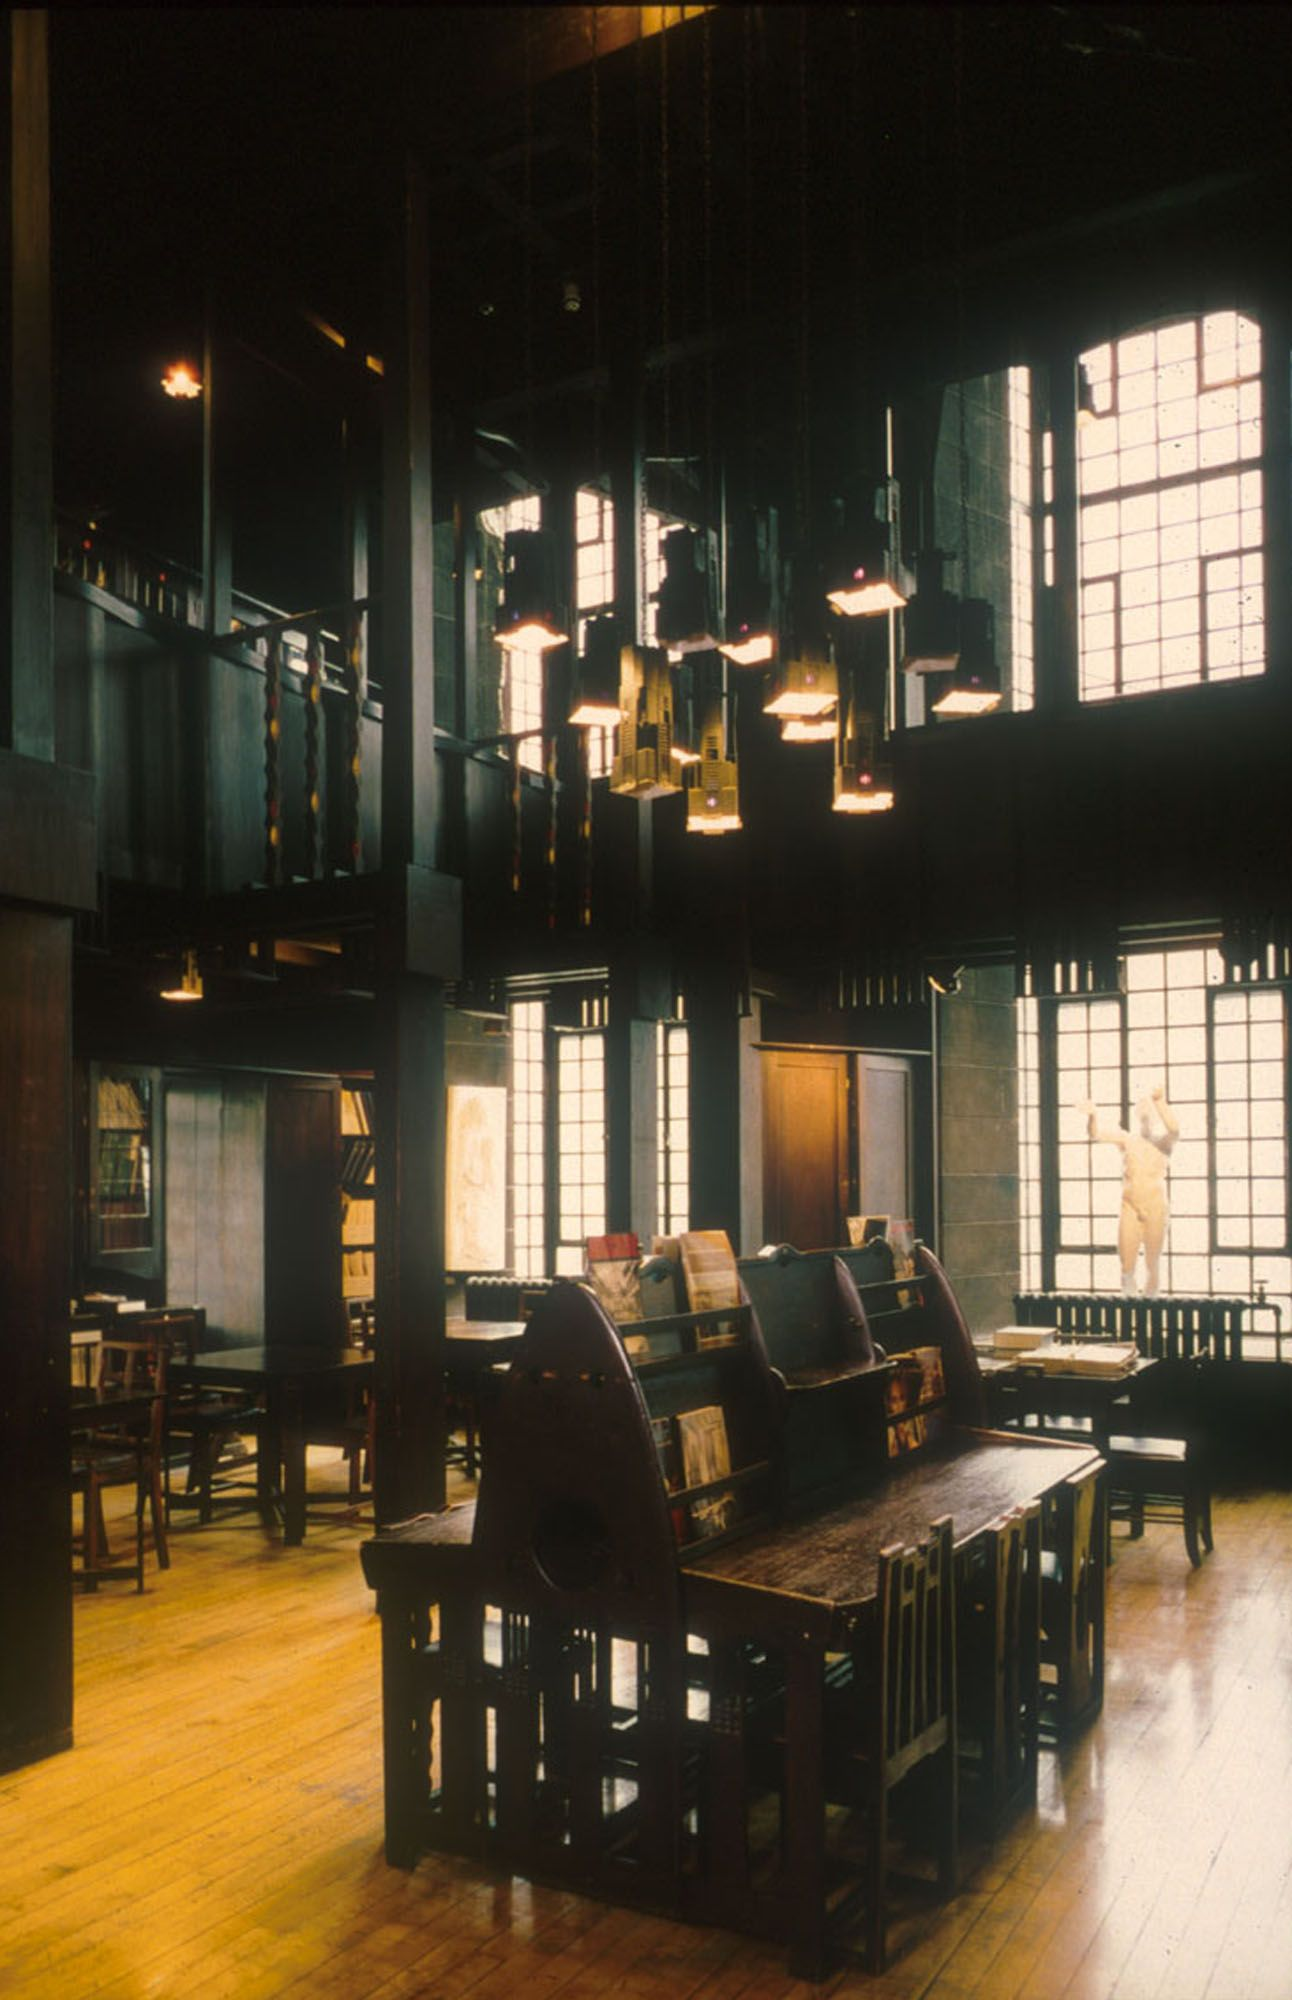 Glasgow School Of Art, The Library Room